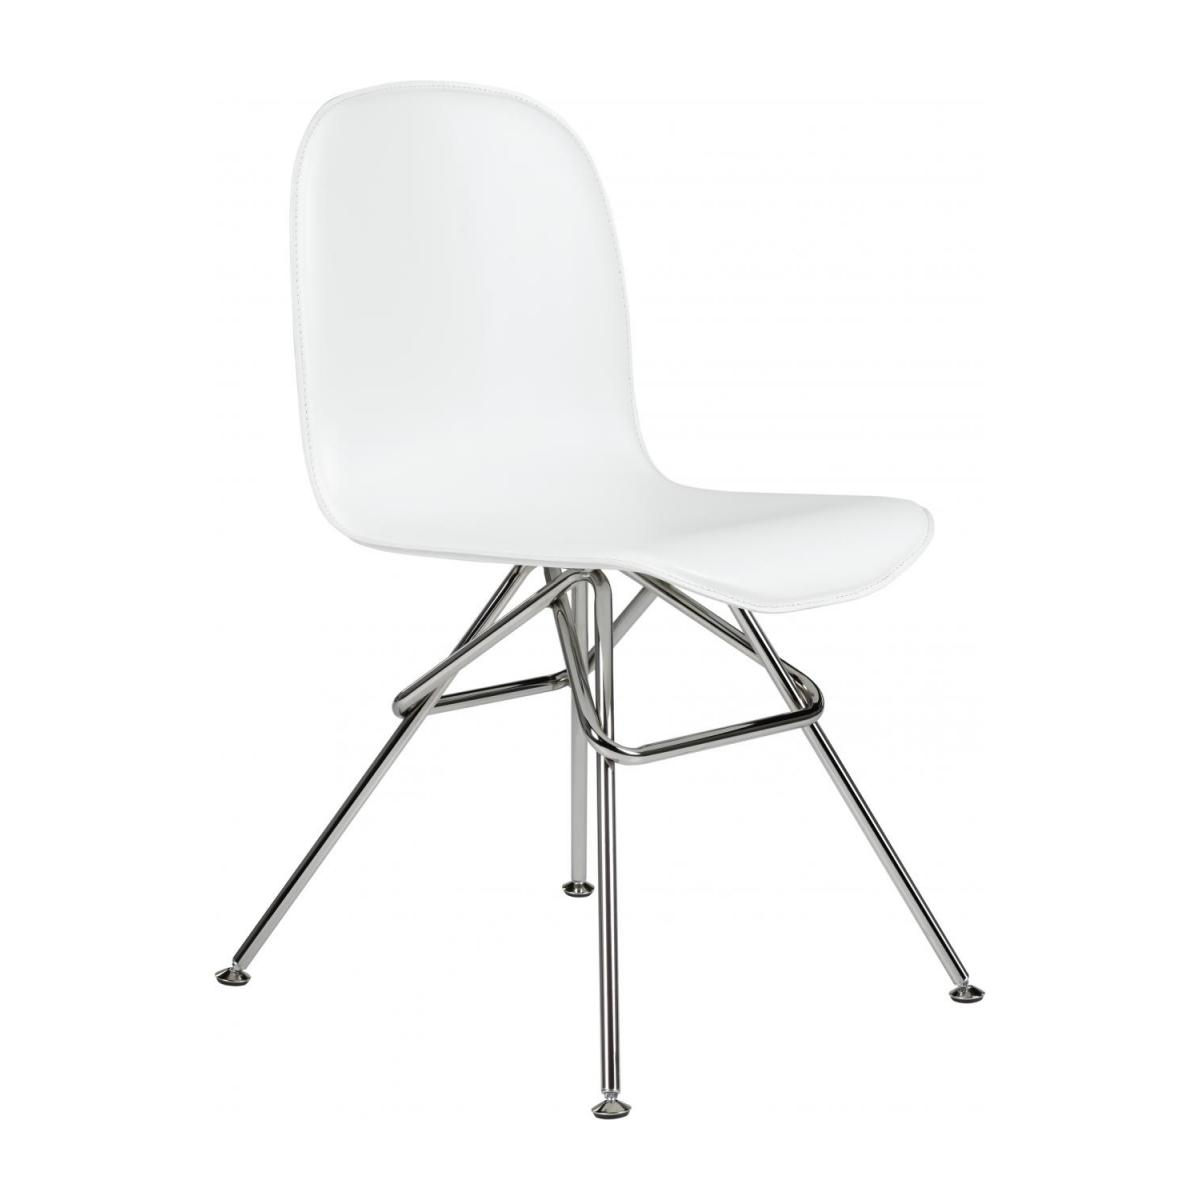 chair steel legs chairs for toddlers loyd with white faux leather cover and chrome n 1